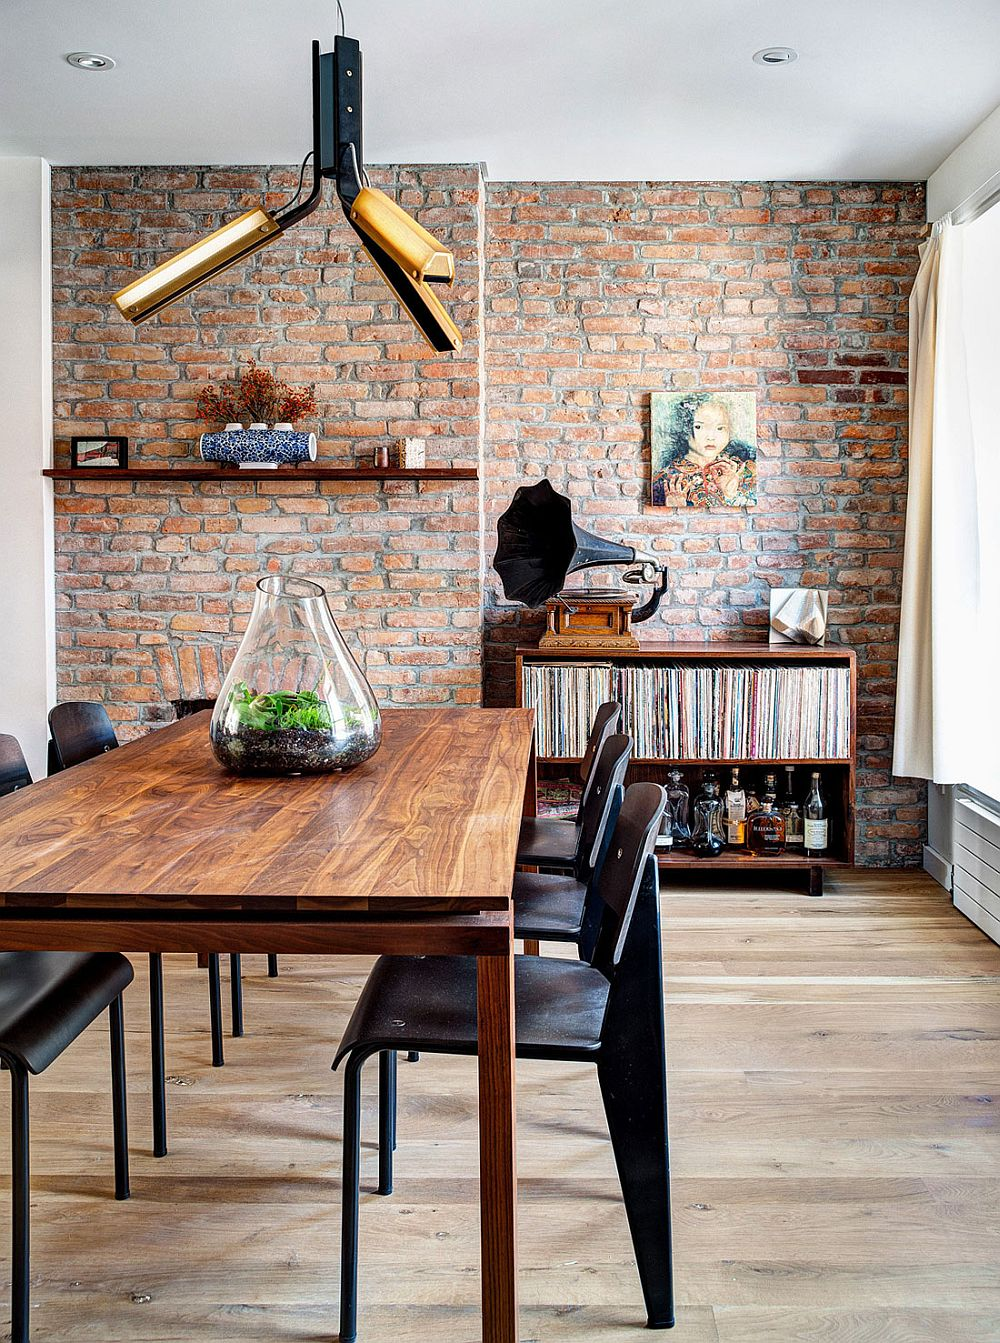 Industrail elements shape the renovated dining space with brick walls